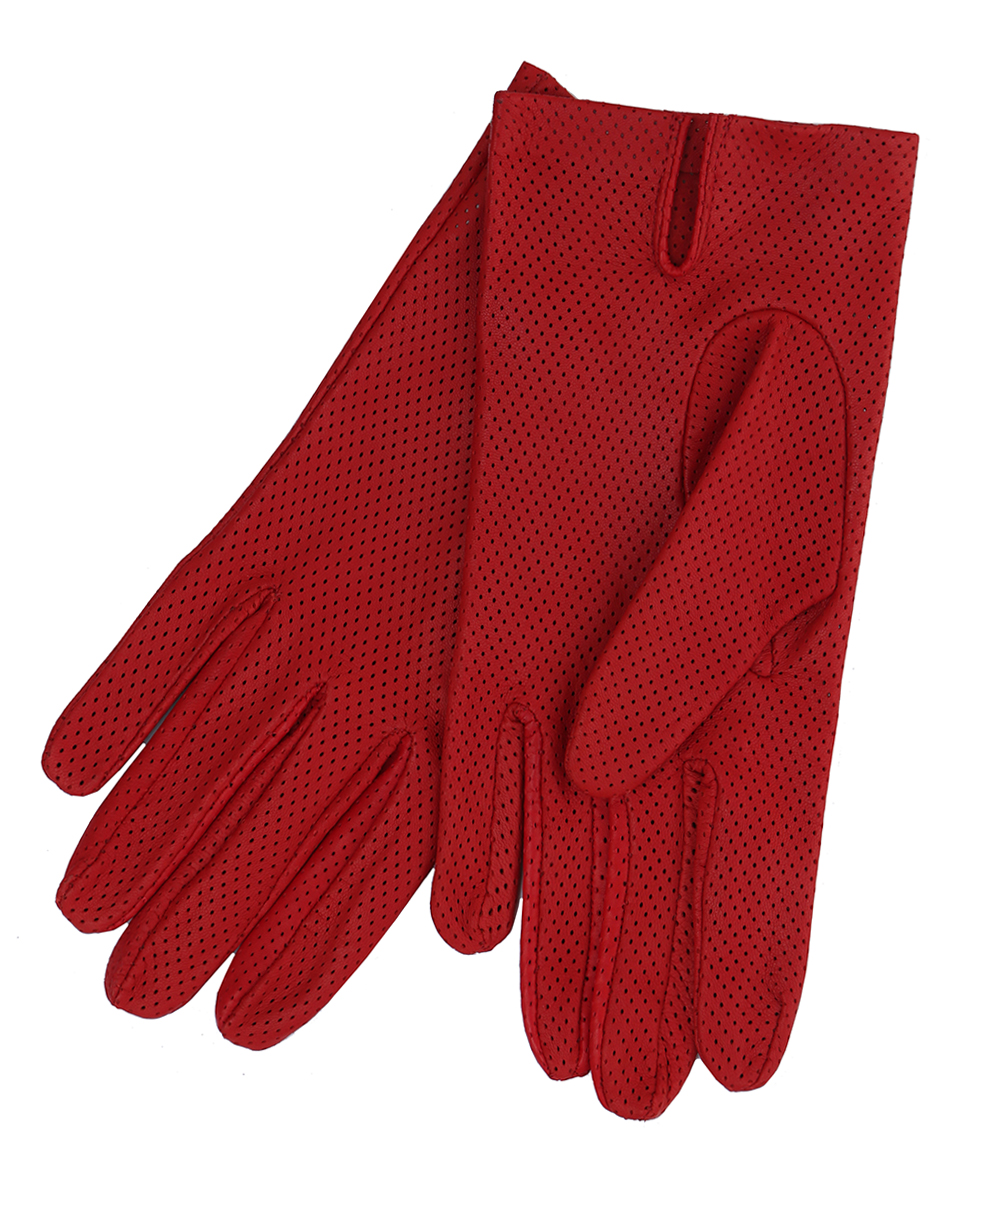 02c4ad13c9591 Product Title - Ladies Italian Nappa Leather Punched Gloves Red